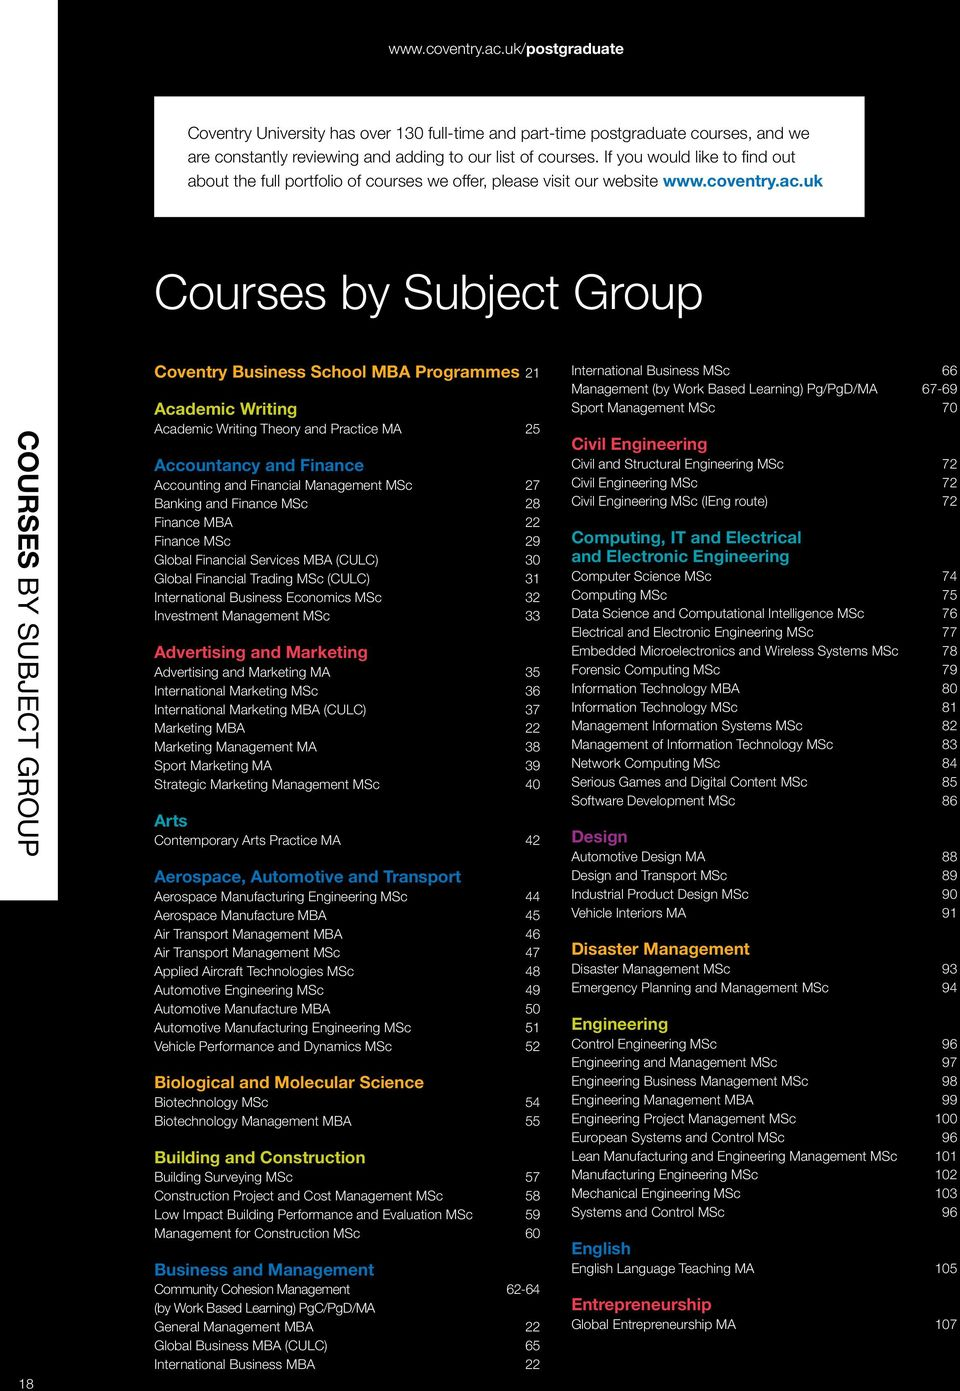 uk Courses by Subject Group Courses By subject group 18 Coventry Business School MBA Programmes 21 Academic Writing Academic Writing Theory and Practice MA 25 Accountancy and Finance Accounting and